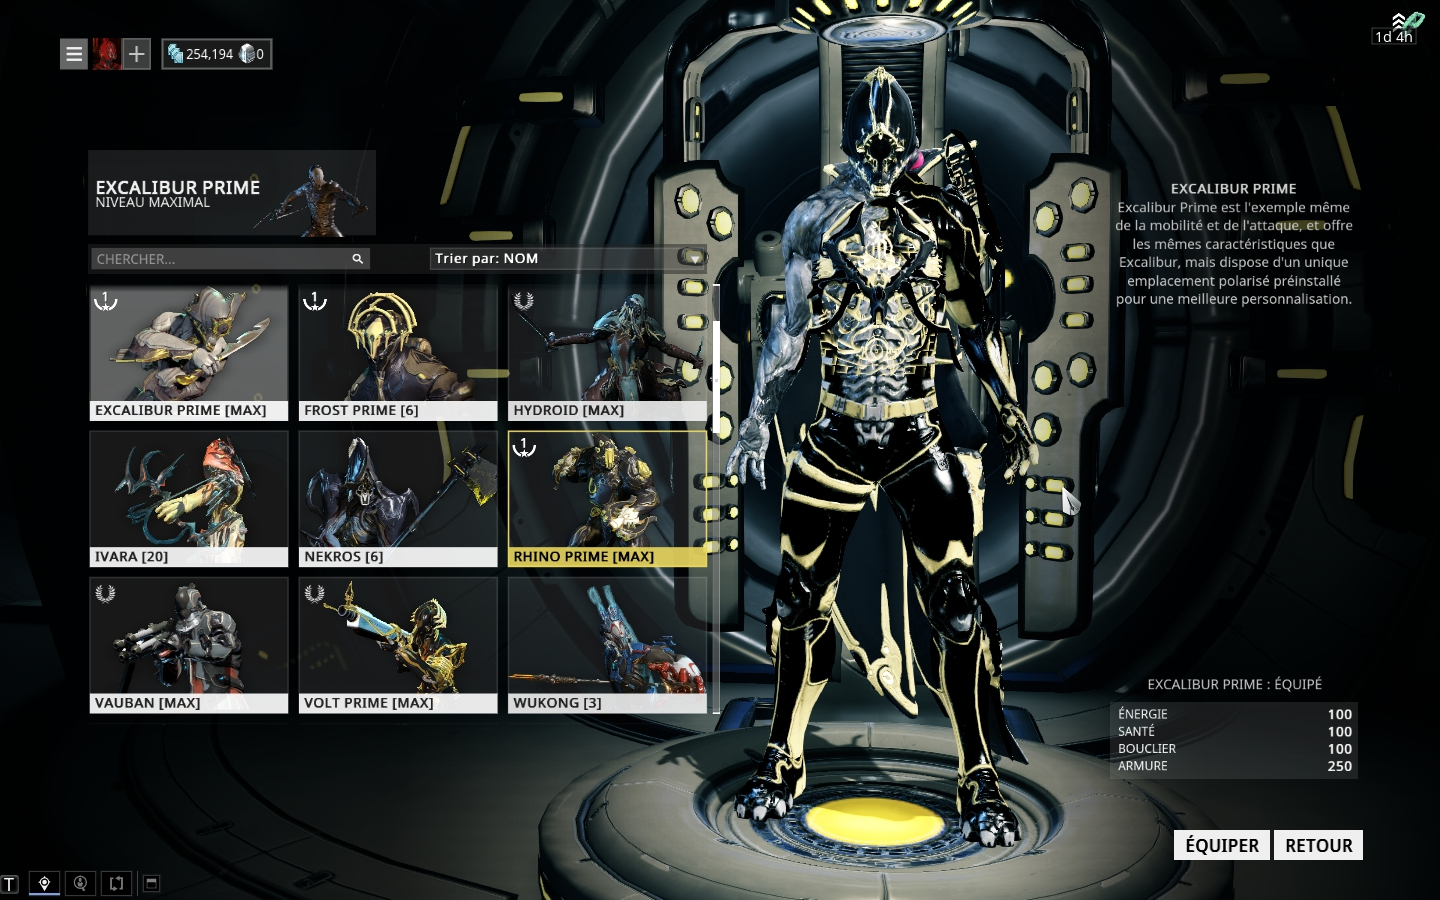 Warframe Account With Excalibur Prime